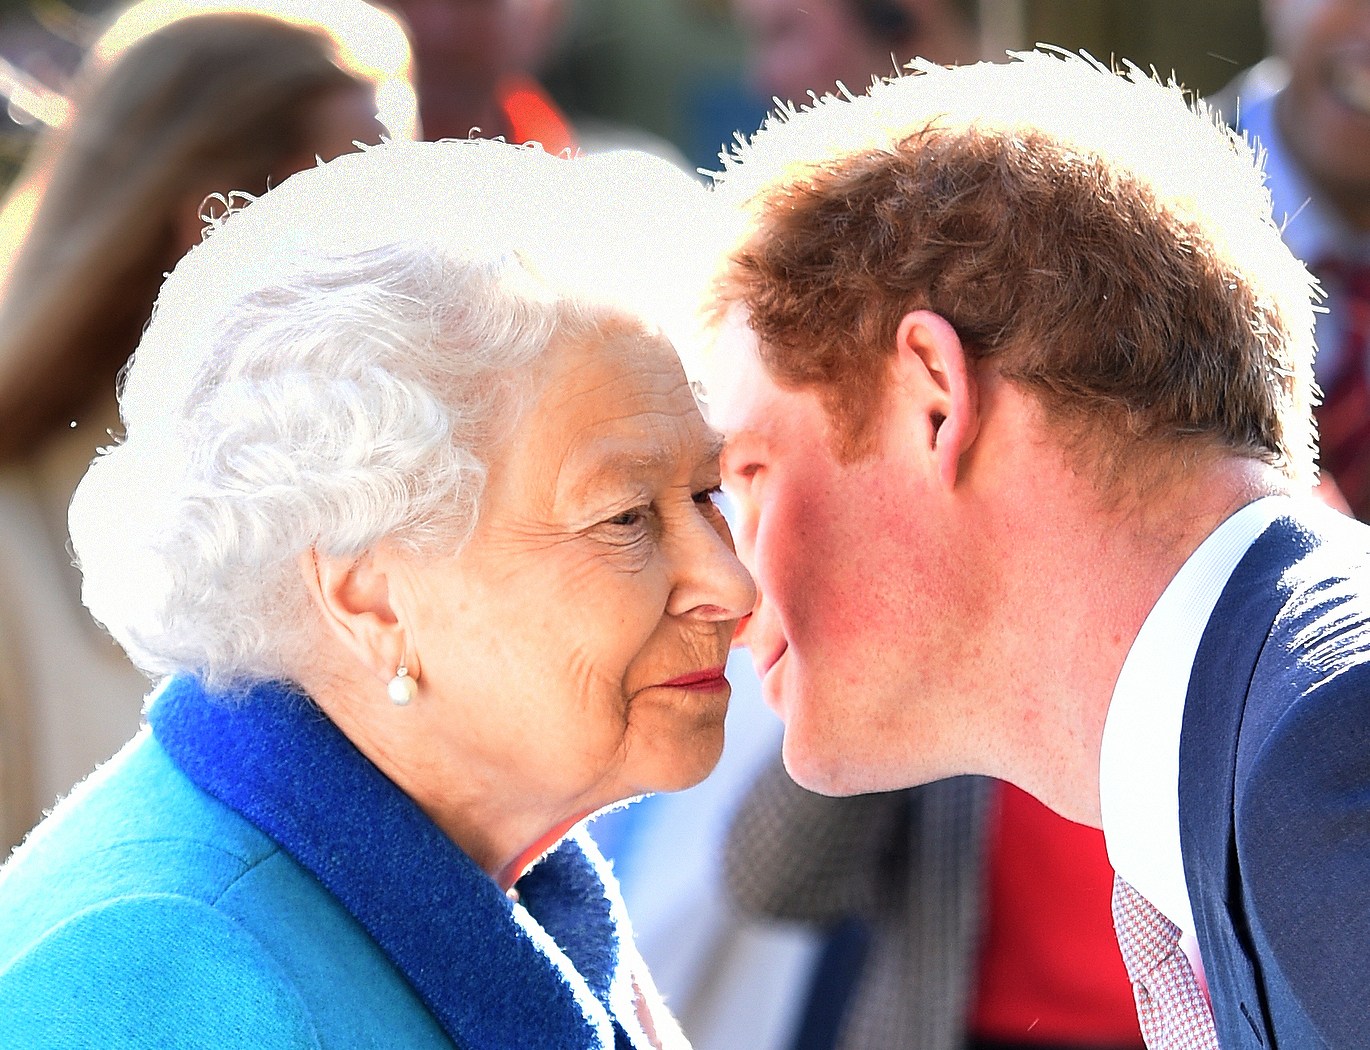 File photo dated 18/05/15 of Queen Elizabeth II being greeted by her grandson the Duke of Sussex. The Queen will host crisis talks with senior royals and the Duke of Sussex on Monday in a bid to find a solution to Meghan and Harry's future roles.